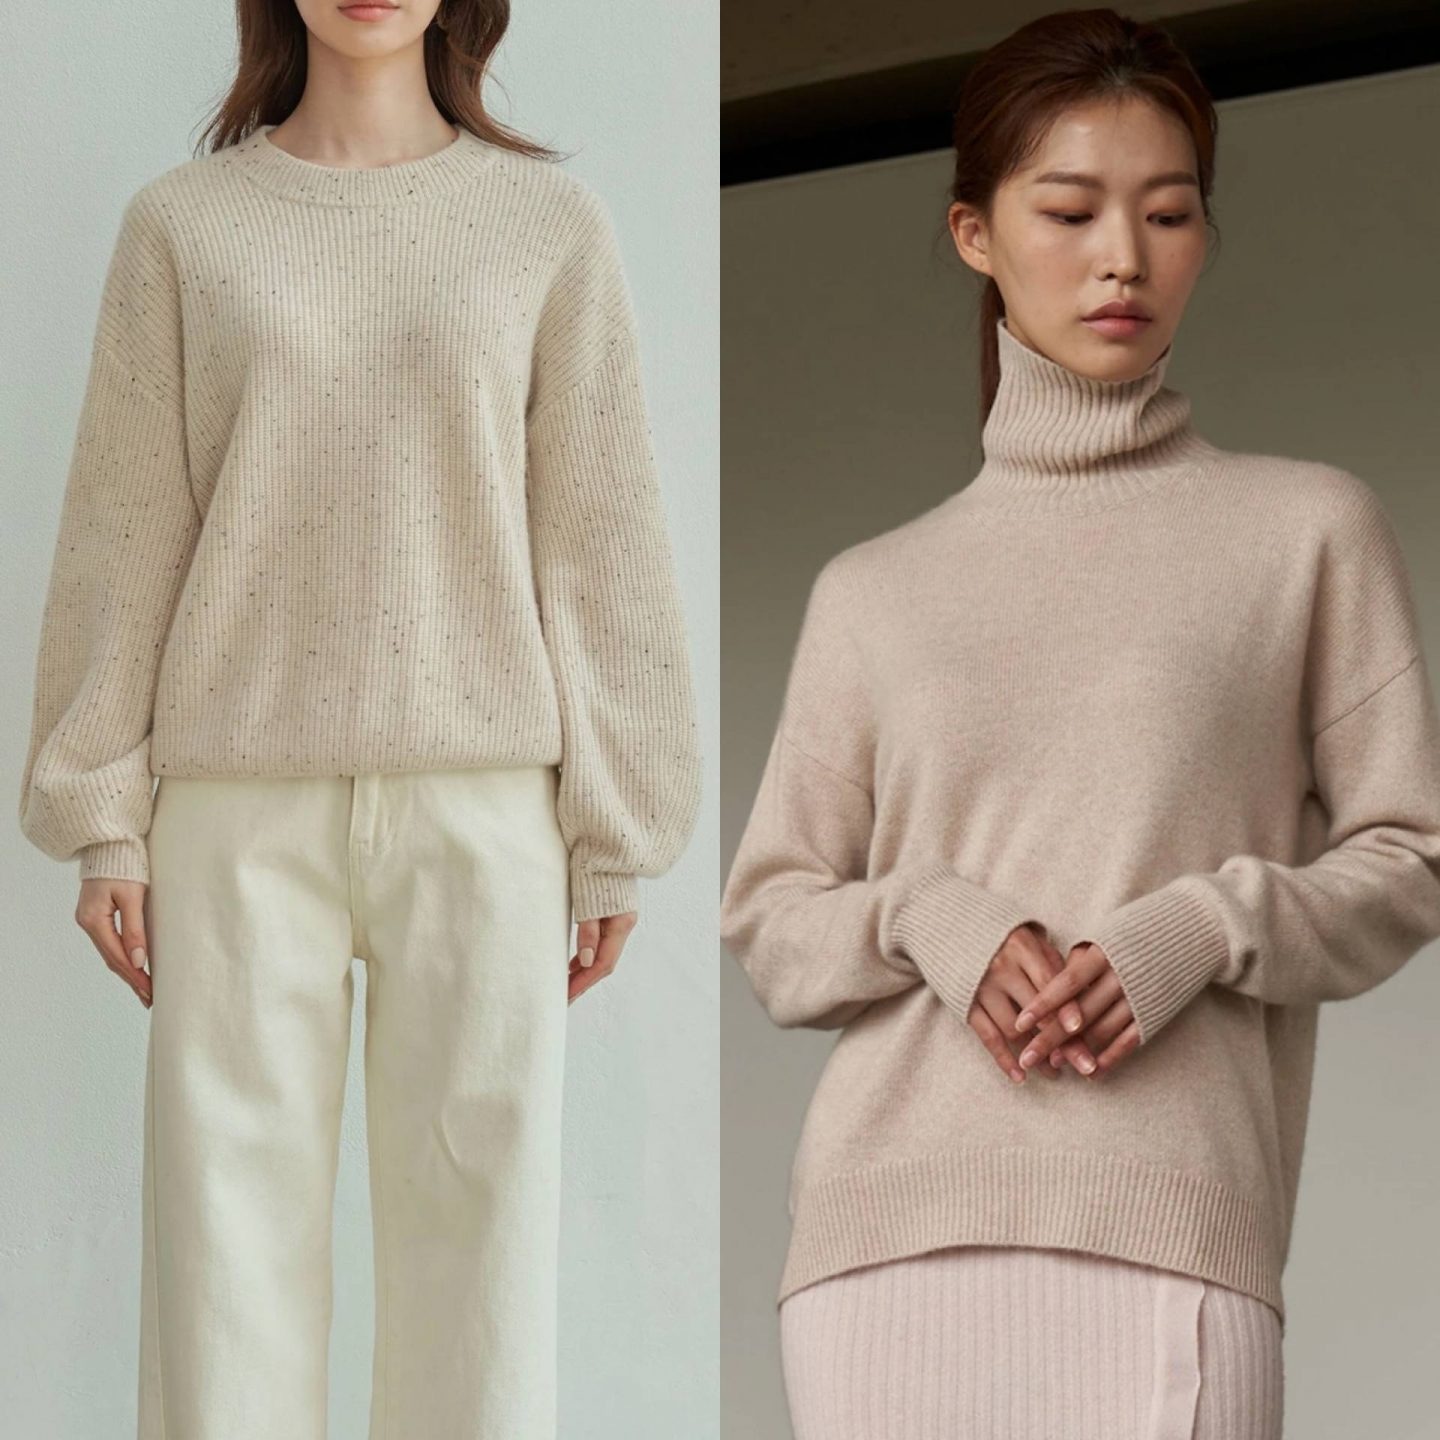 the curated knits in blog post sharing best knitwear of 2021